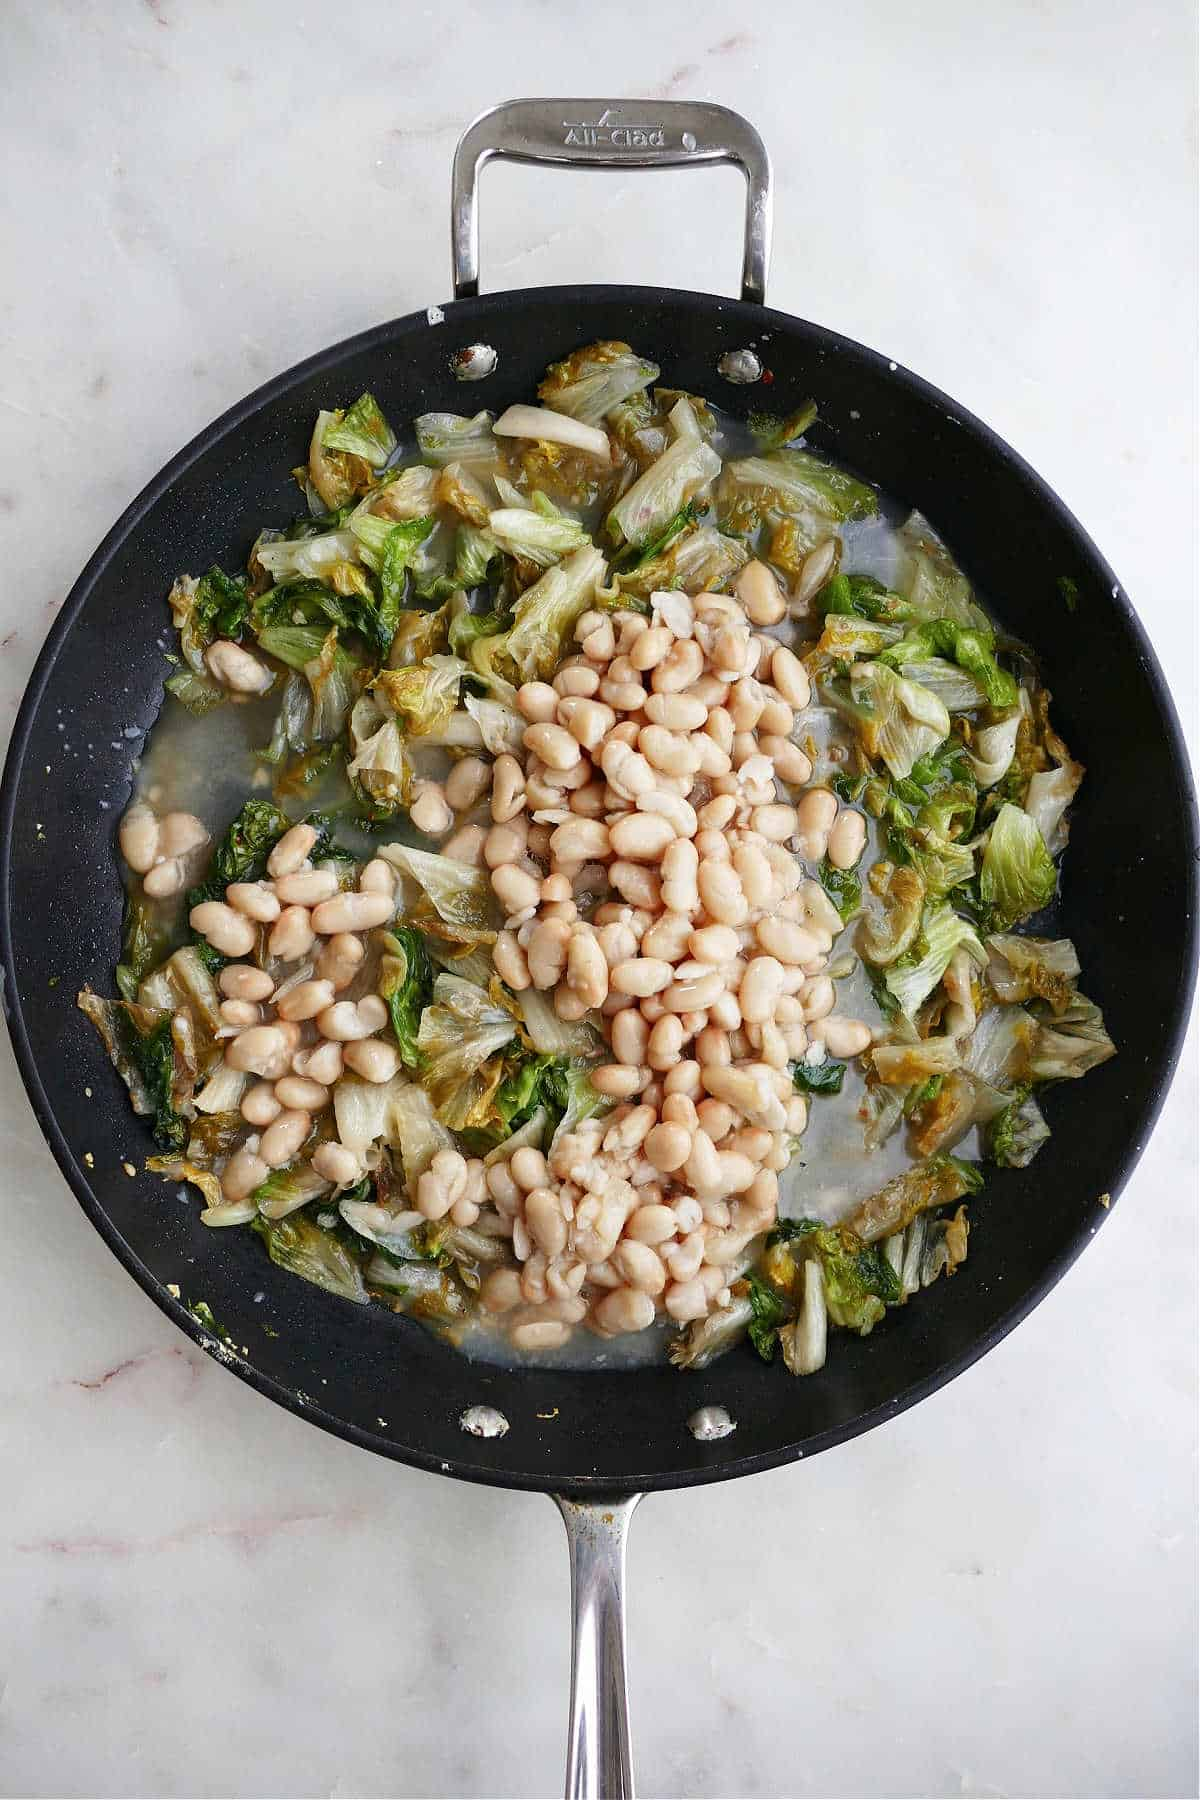 escarole and white beans cooking in a large black skillet on a white counter